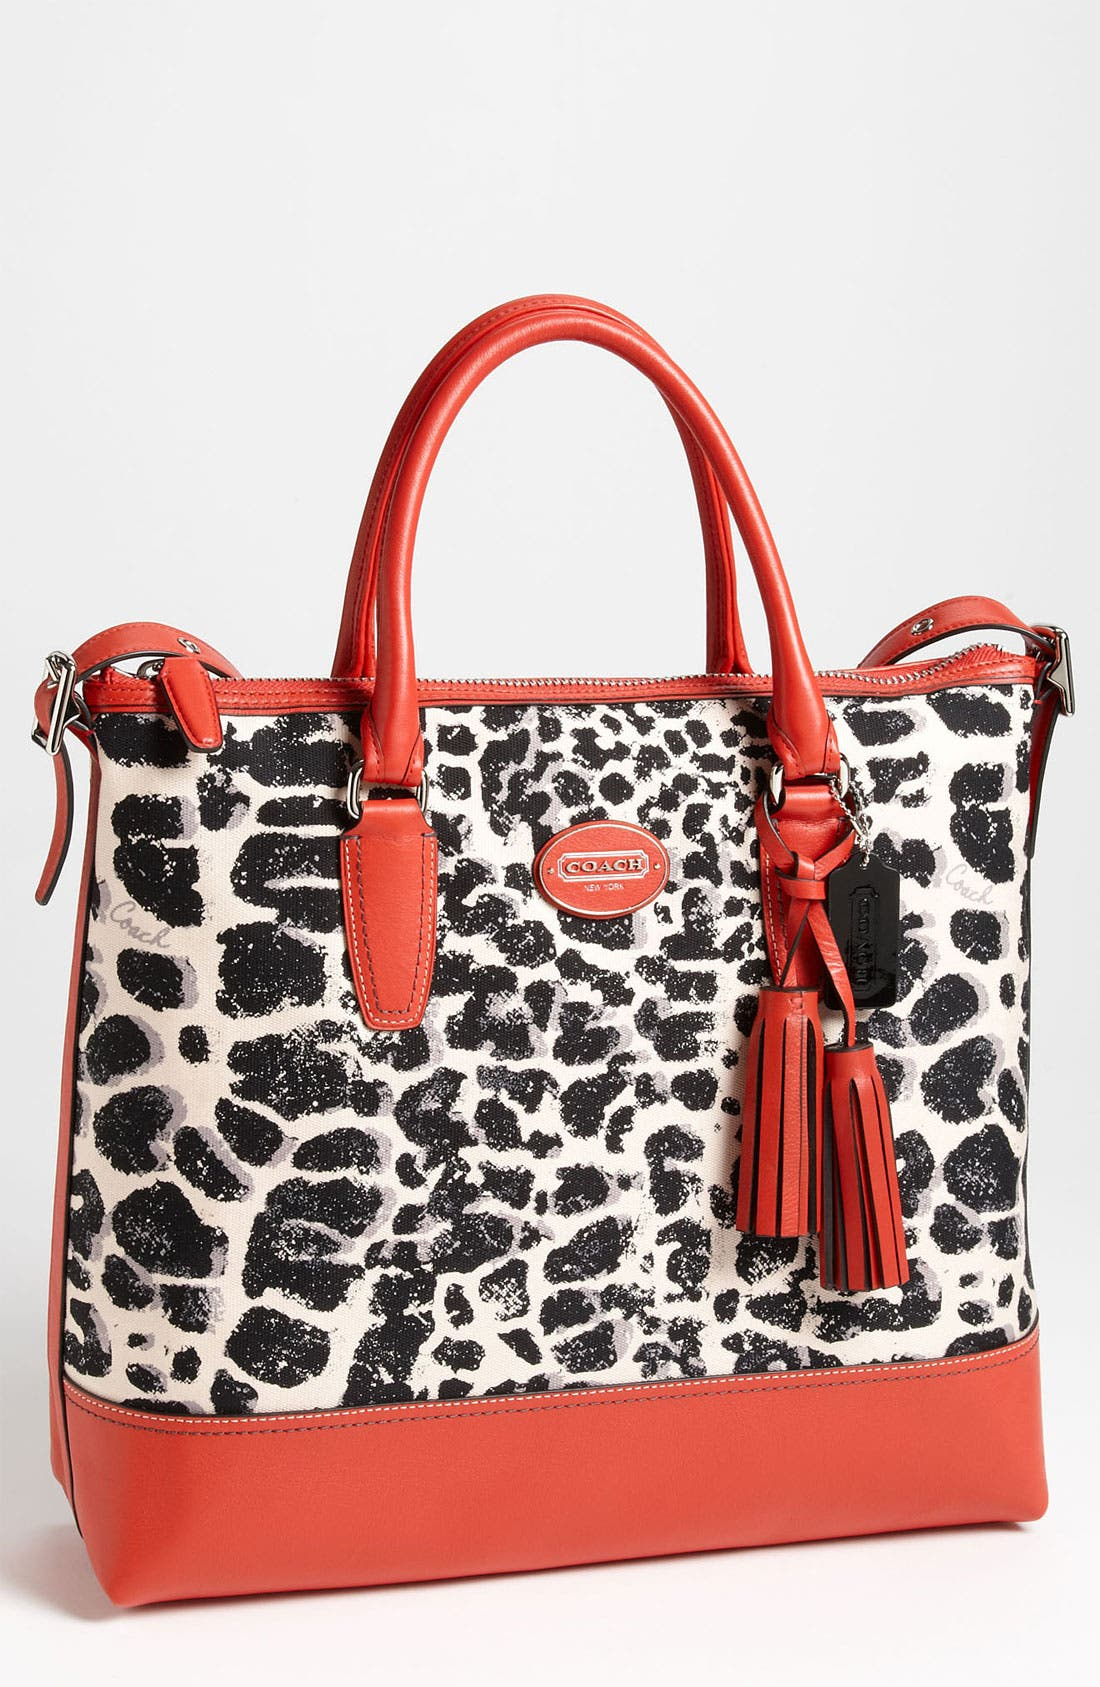 Main Image - COACH 'Legacy - Rory' Ocelot Print Satchel